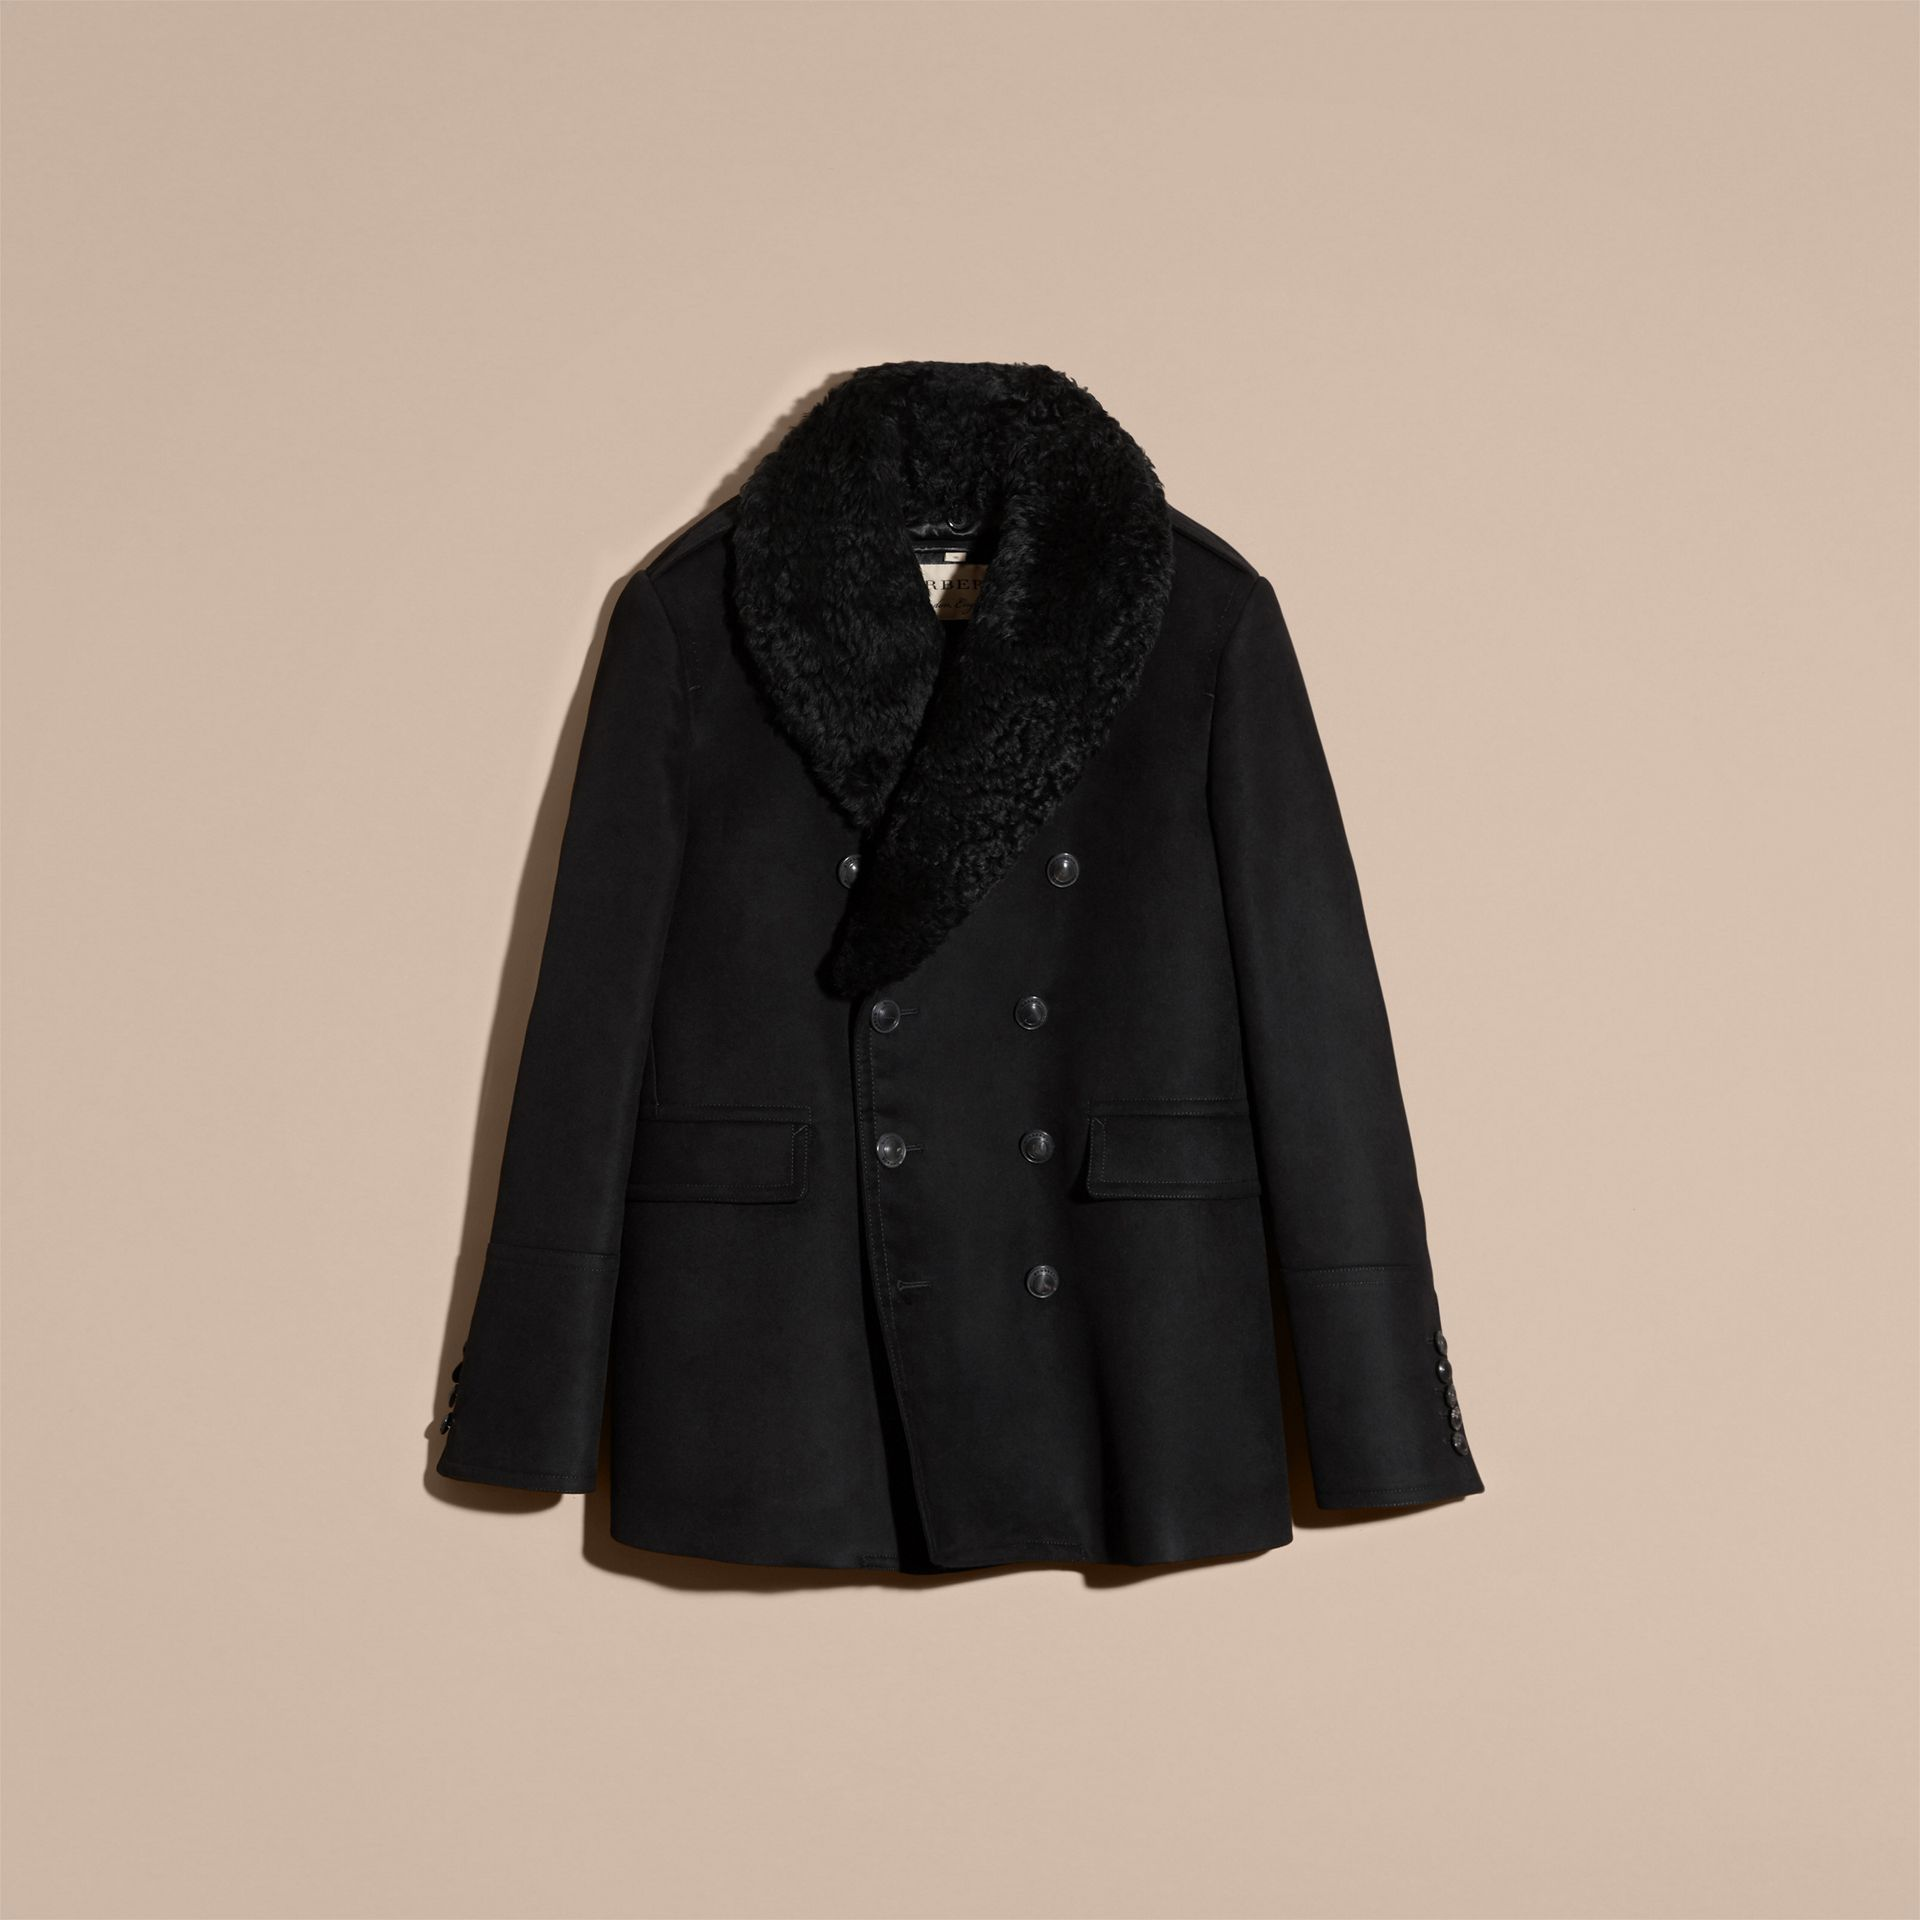 Black Technical-cotton Moleskin Pea Coat with Shearling Collar - gallery image 3